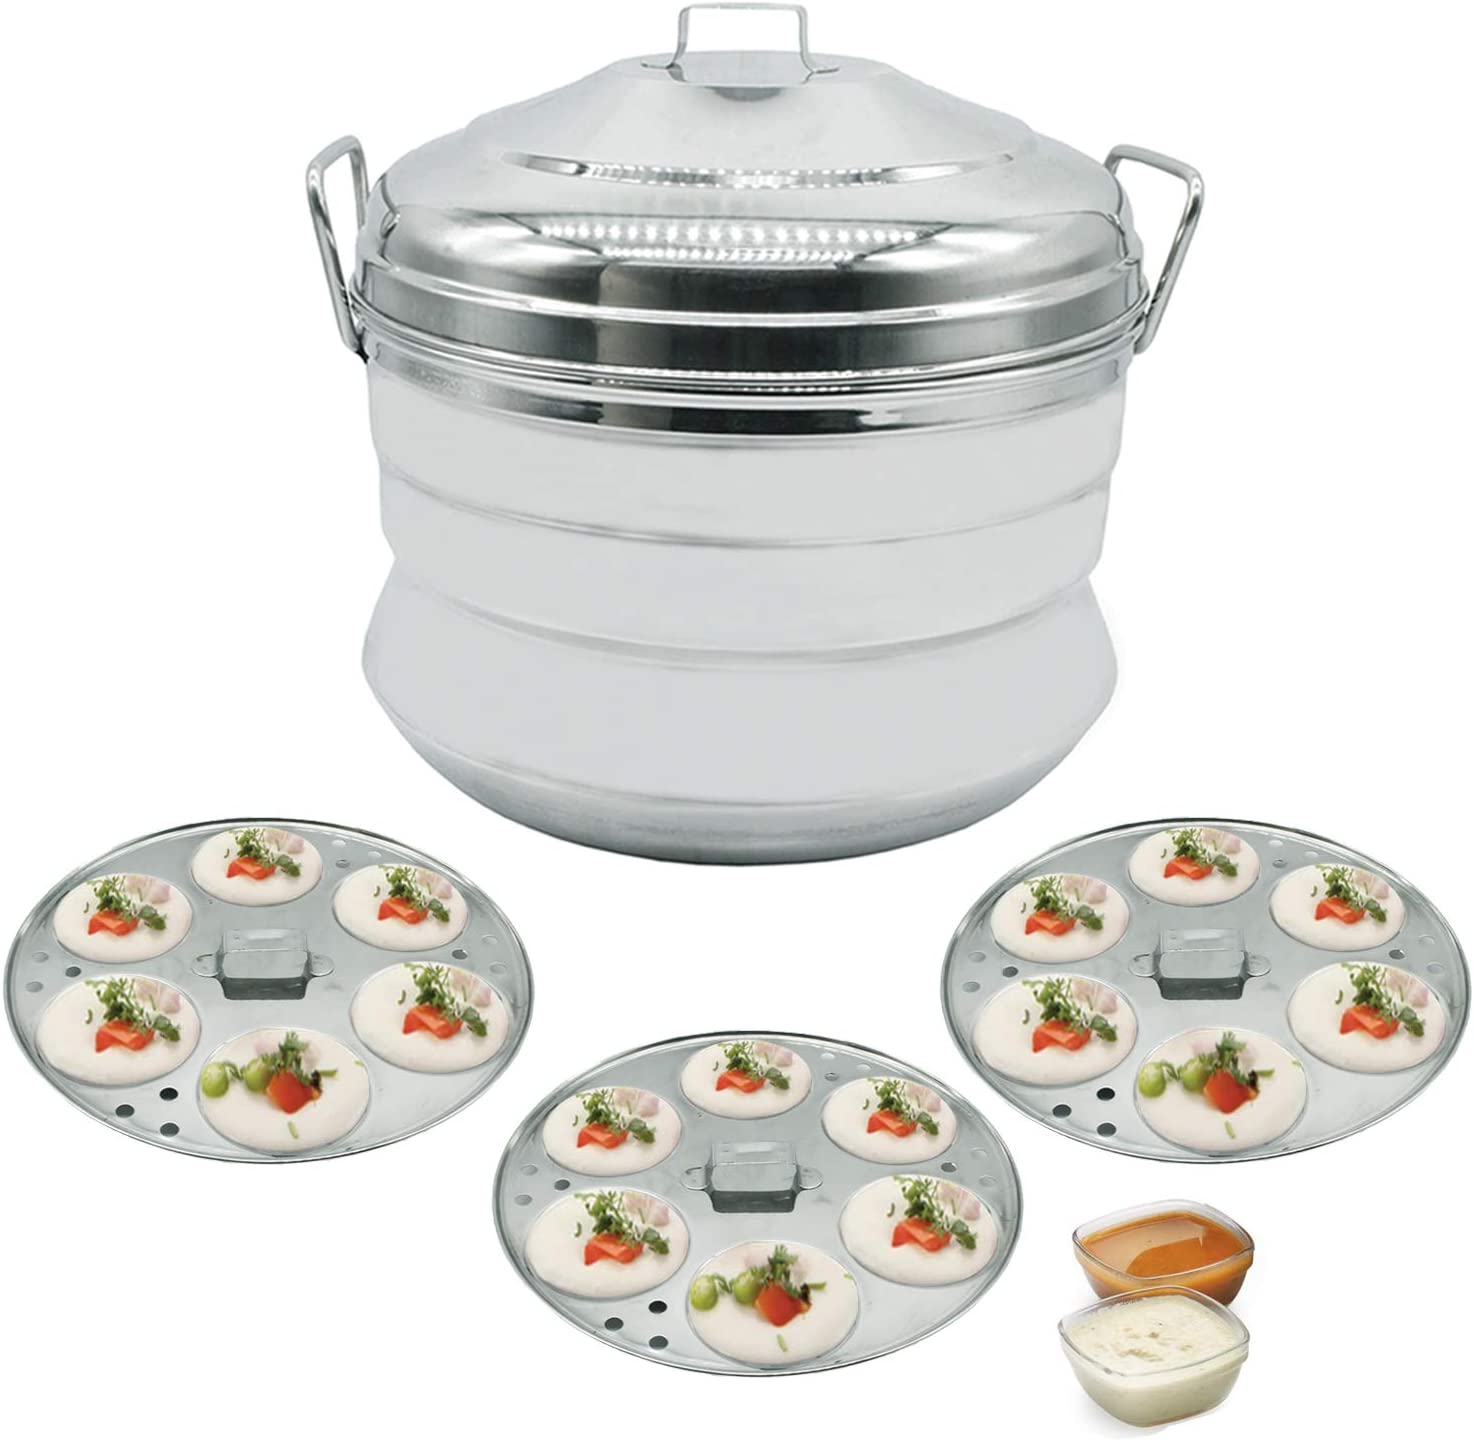 Panca Premium Stainless Steel Idli Cooker 18 Cavity Panai, Idly Maker with Steamer Cooker, Idly Panai, Idli Pot, Idli Maker with Steamer Induction and Gas Stove Compatible, Silver